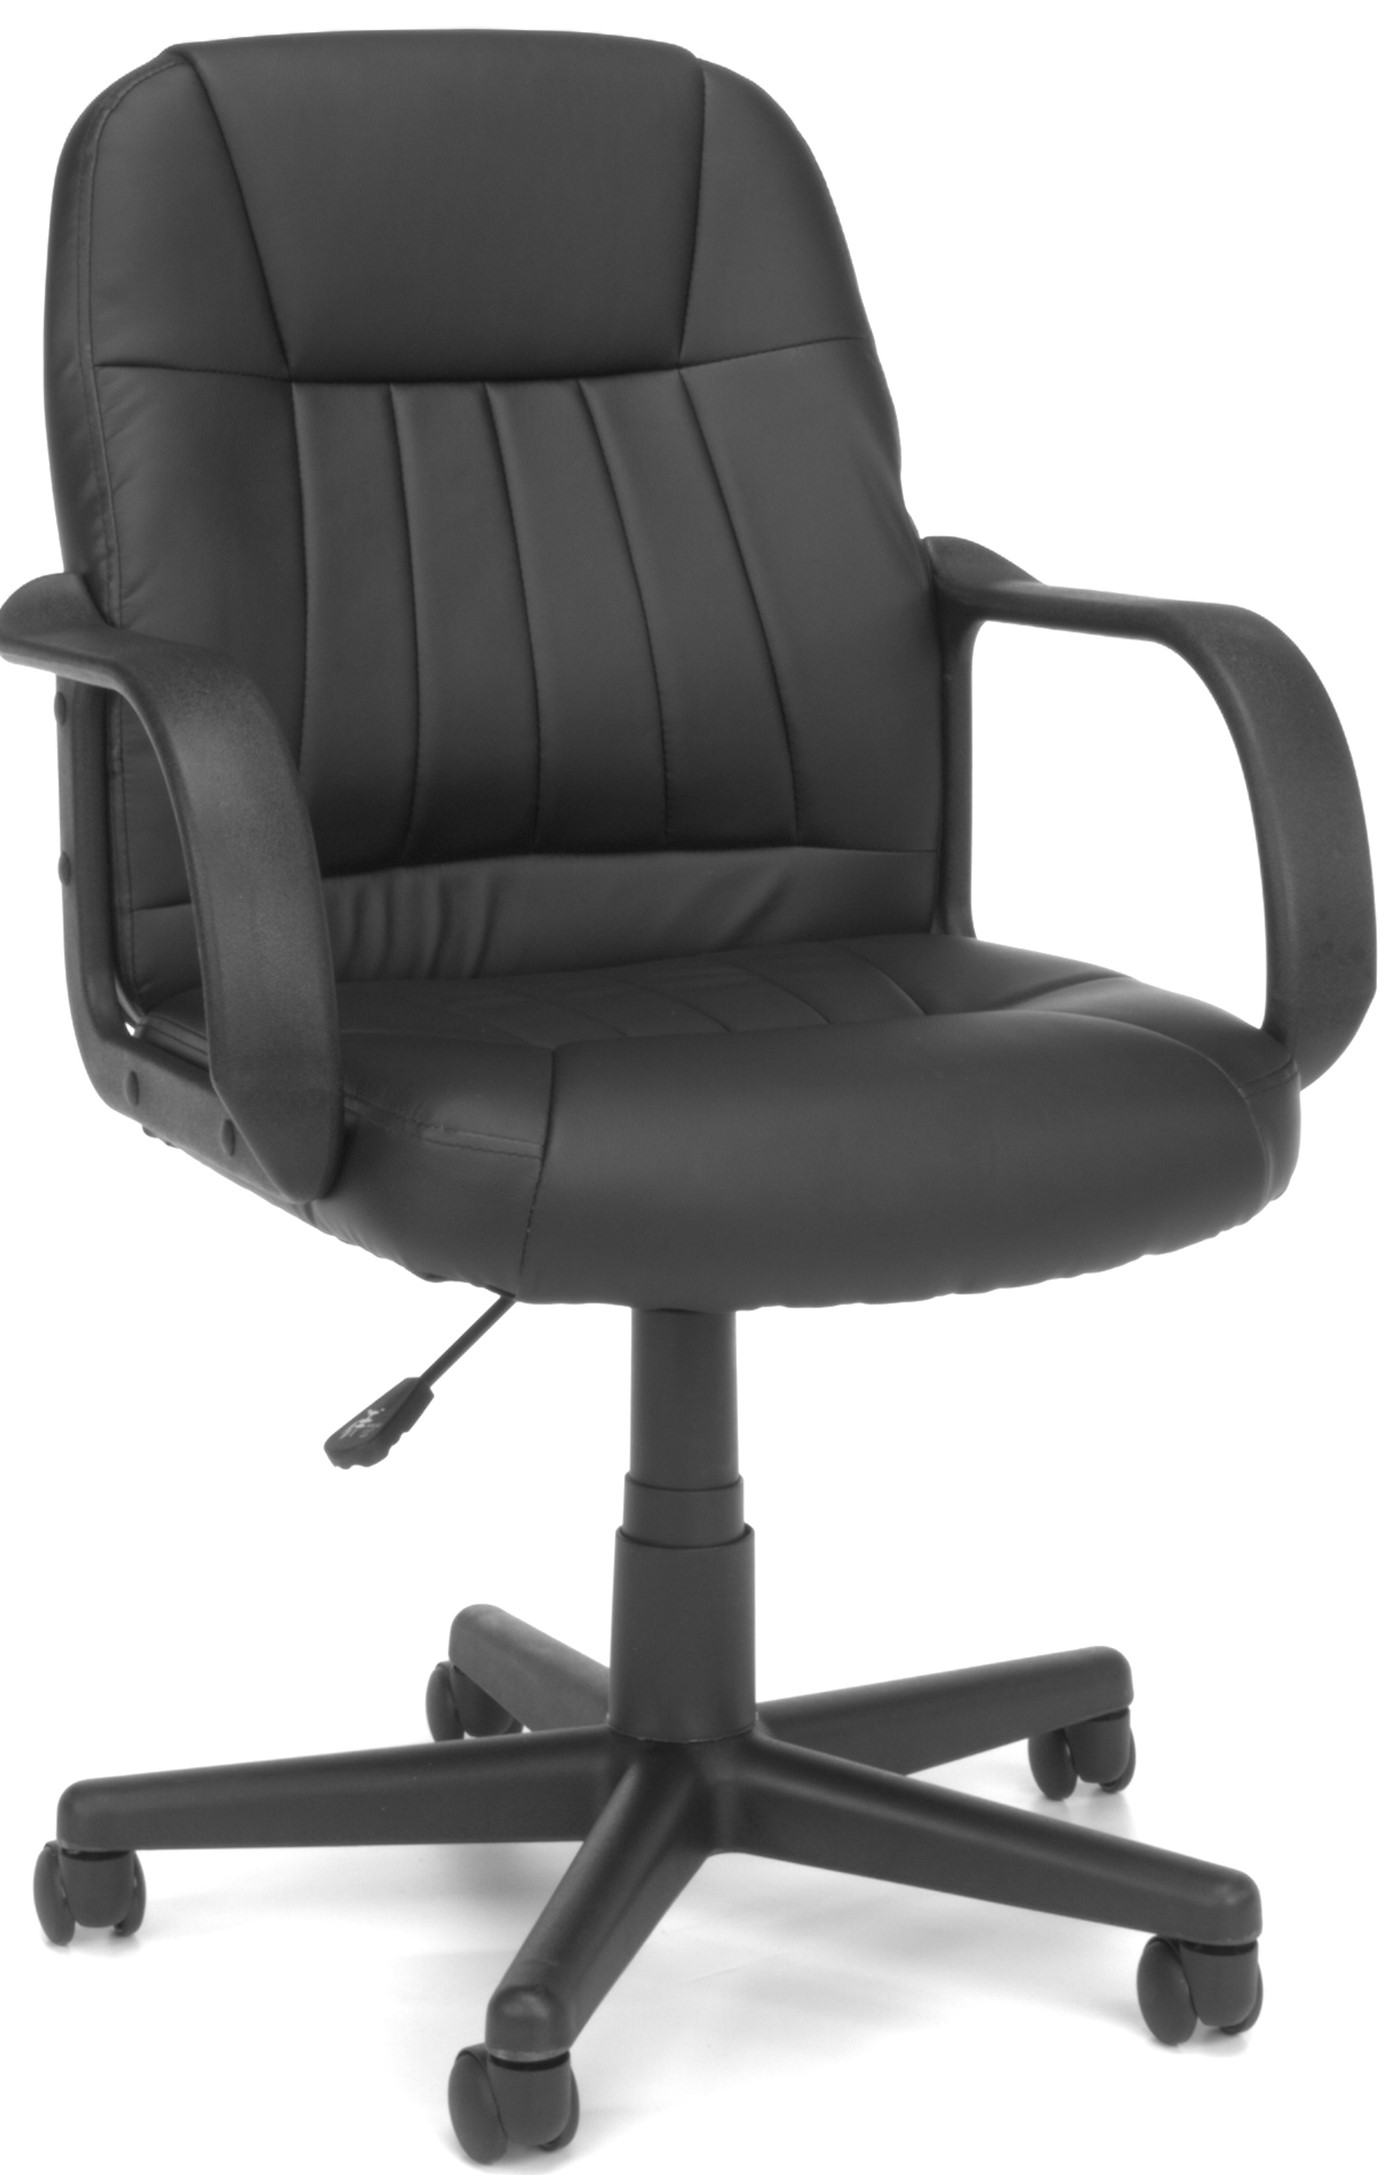 Essentials Collection Executive Office Chair Black